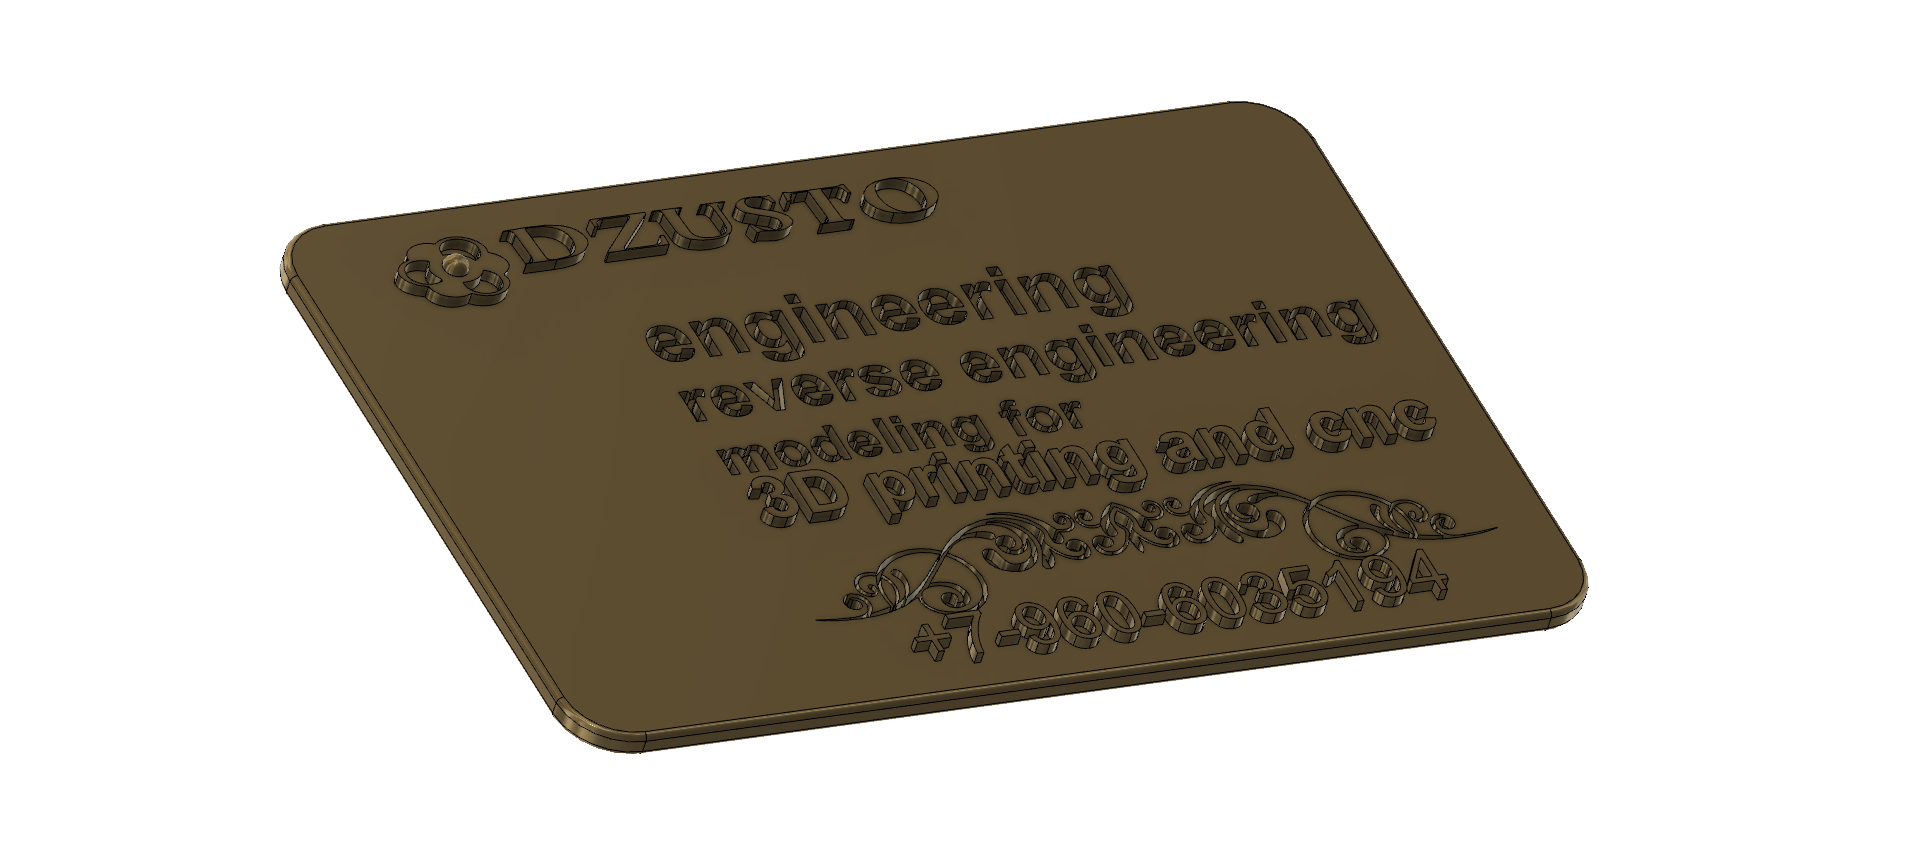 business card 01 v5-08.png Download free STL file Modeling product engineering and reverse-engineering  for CNC machines and 3D printing • 3D printable object, Dzusto